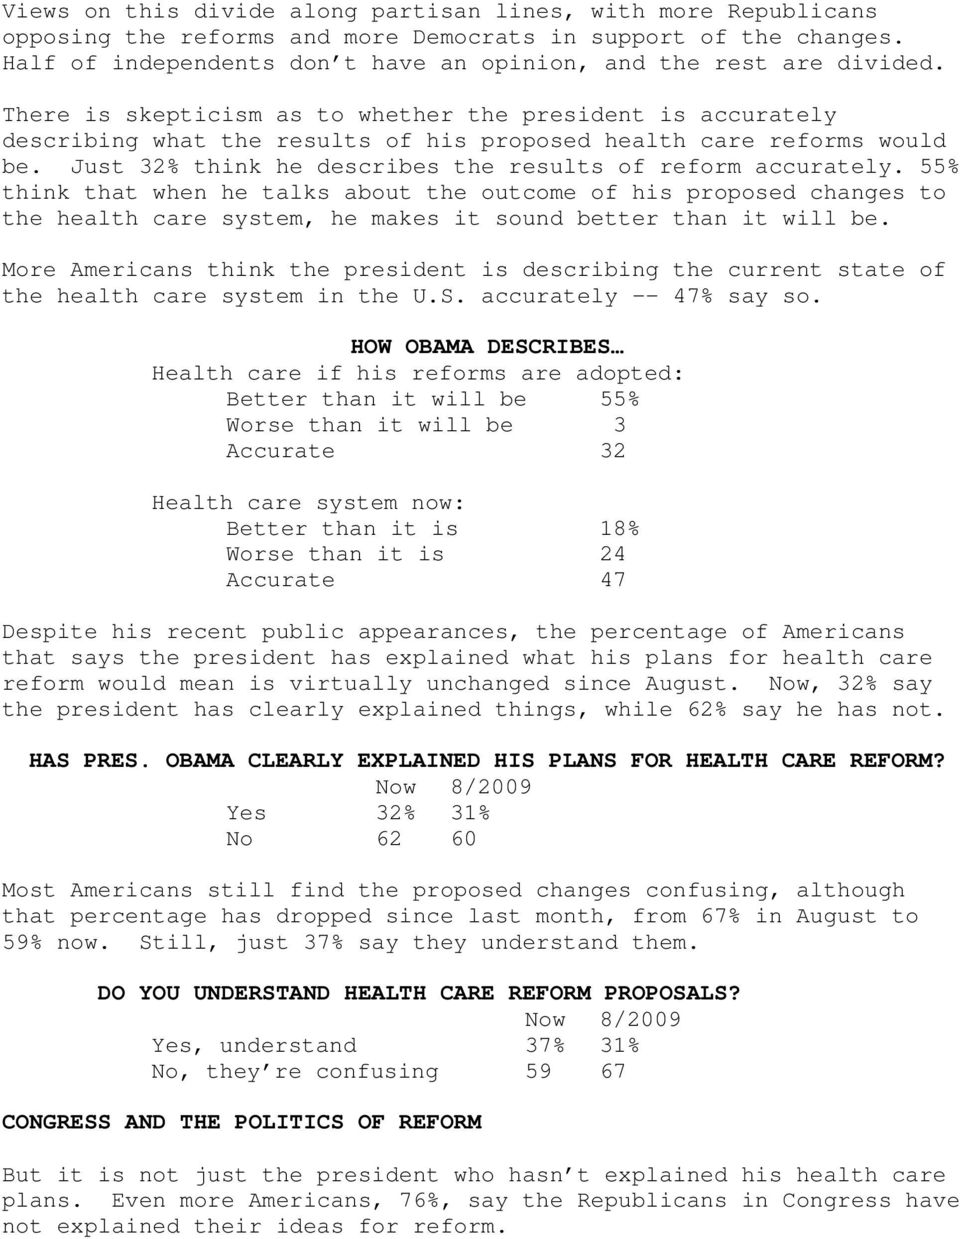 There is skepticism as to whether the president is accurately describing what the results of his proposed health care reforms would be. Just 32% think he describes the results of reform accurately.